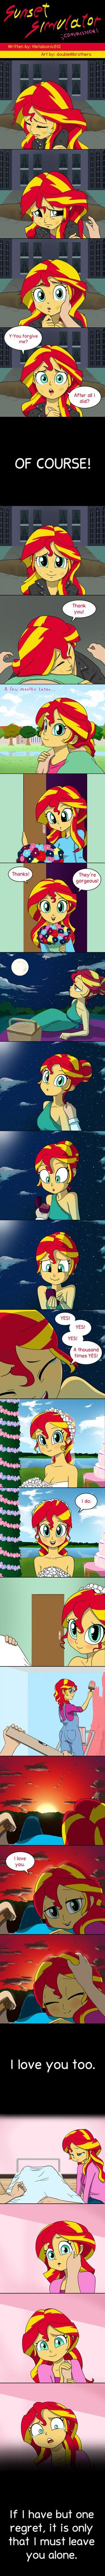 Sunset Shimmer Simulator by doubleWbrothers.deviantart.com on @DeviantArt. Well, shit now I'm depressed.